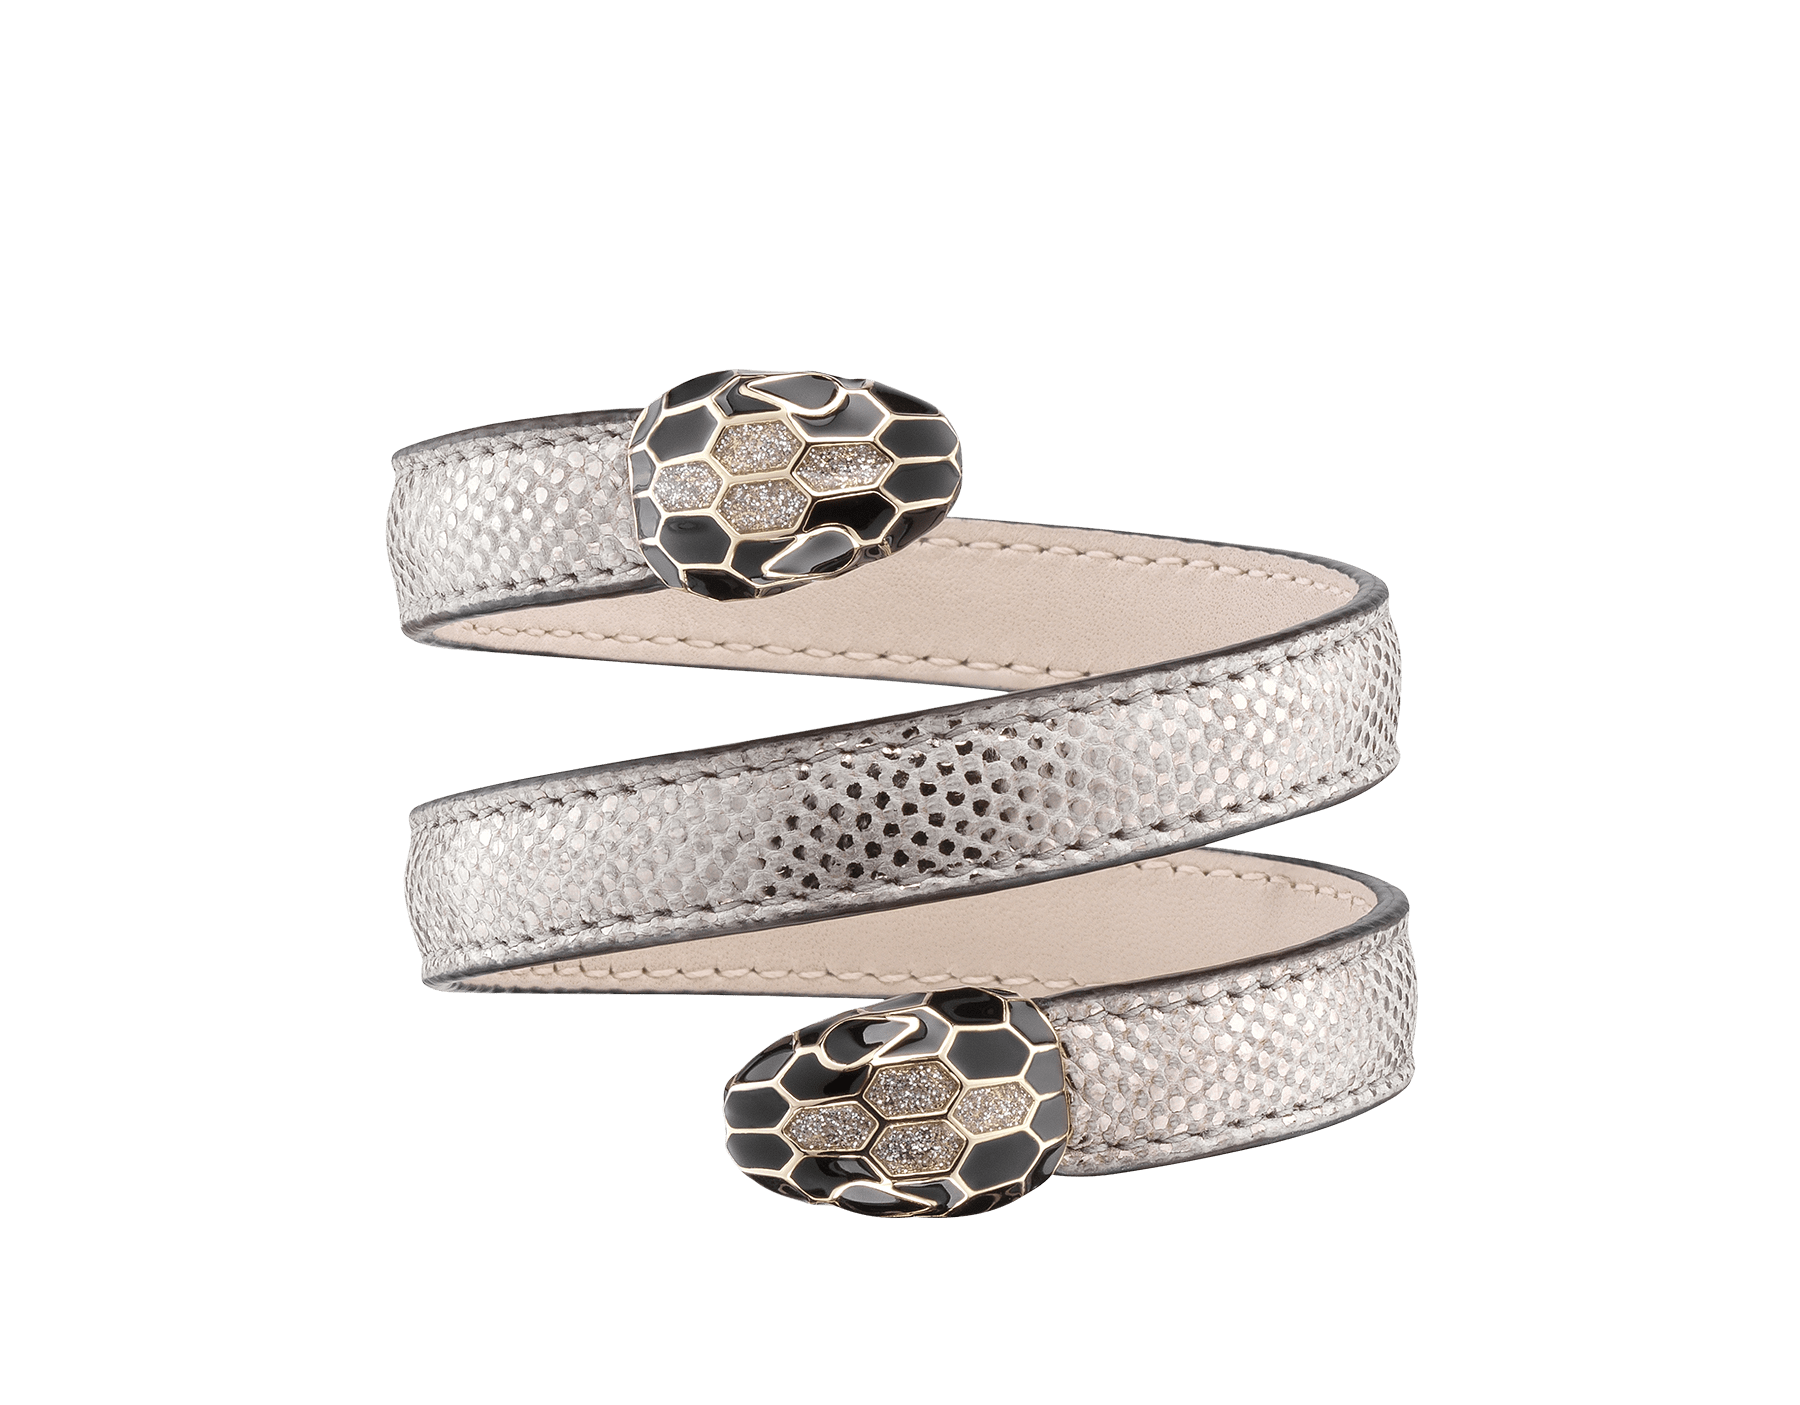 Multi-coiled rigid Cleopatra bracelet in silver metallic karung skin, with brass light gold plated hardware. Double tempting Serpenti head finished in black and glitter silver enamel, with eyes in black enamel. 285665 image 1